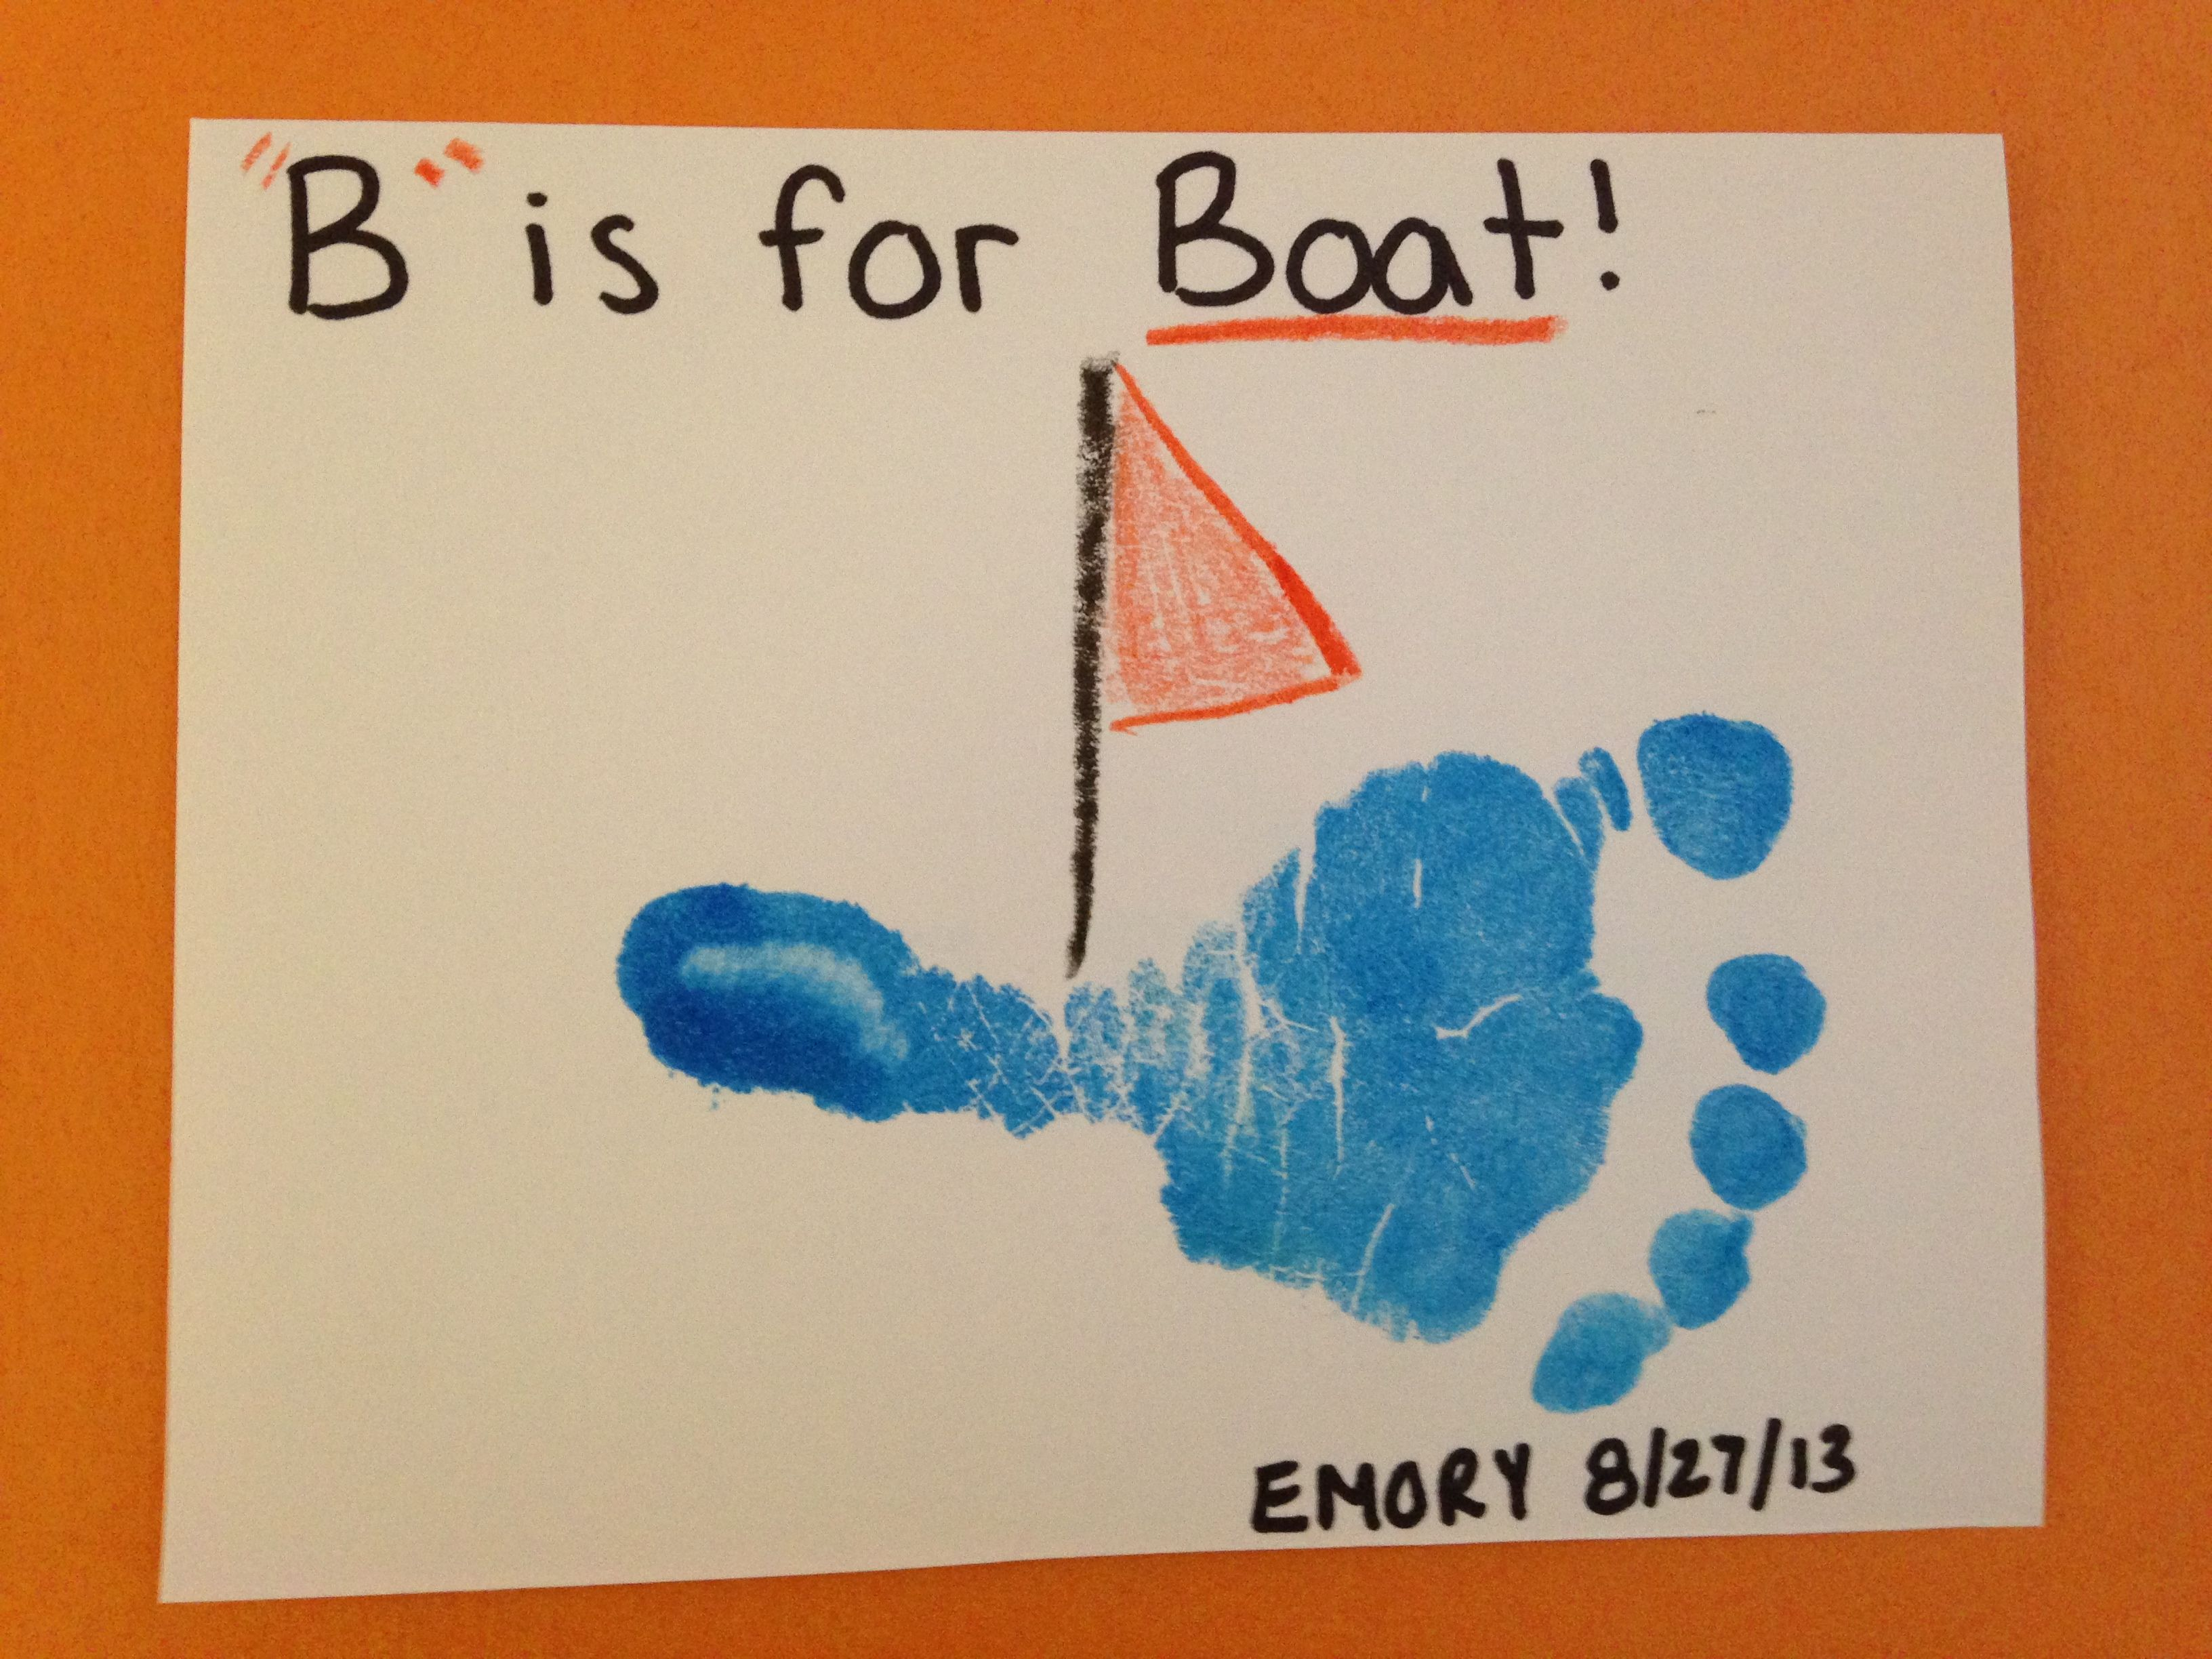 B is for Boat Footprint | Infant Room | Toddler arts, crafts, Toddler art projects, Lesson plans ...